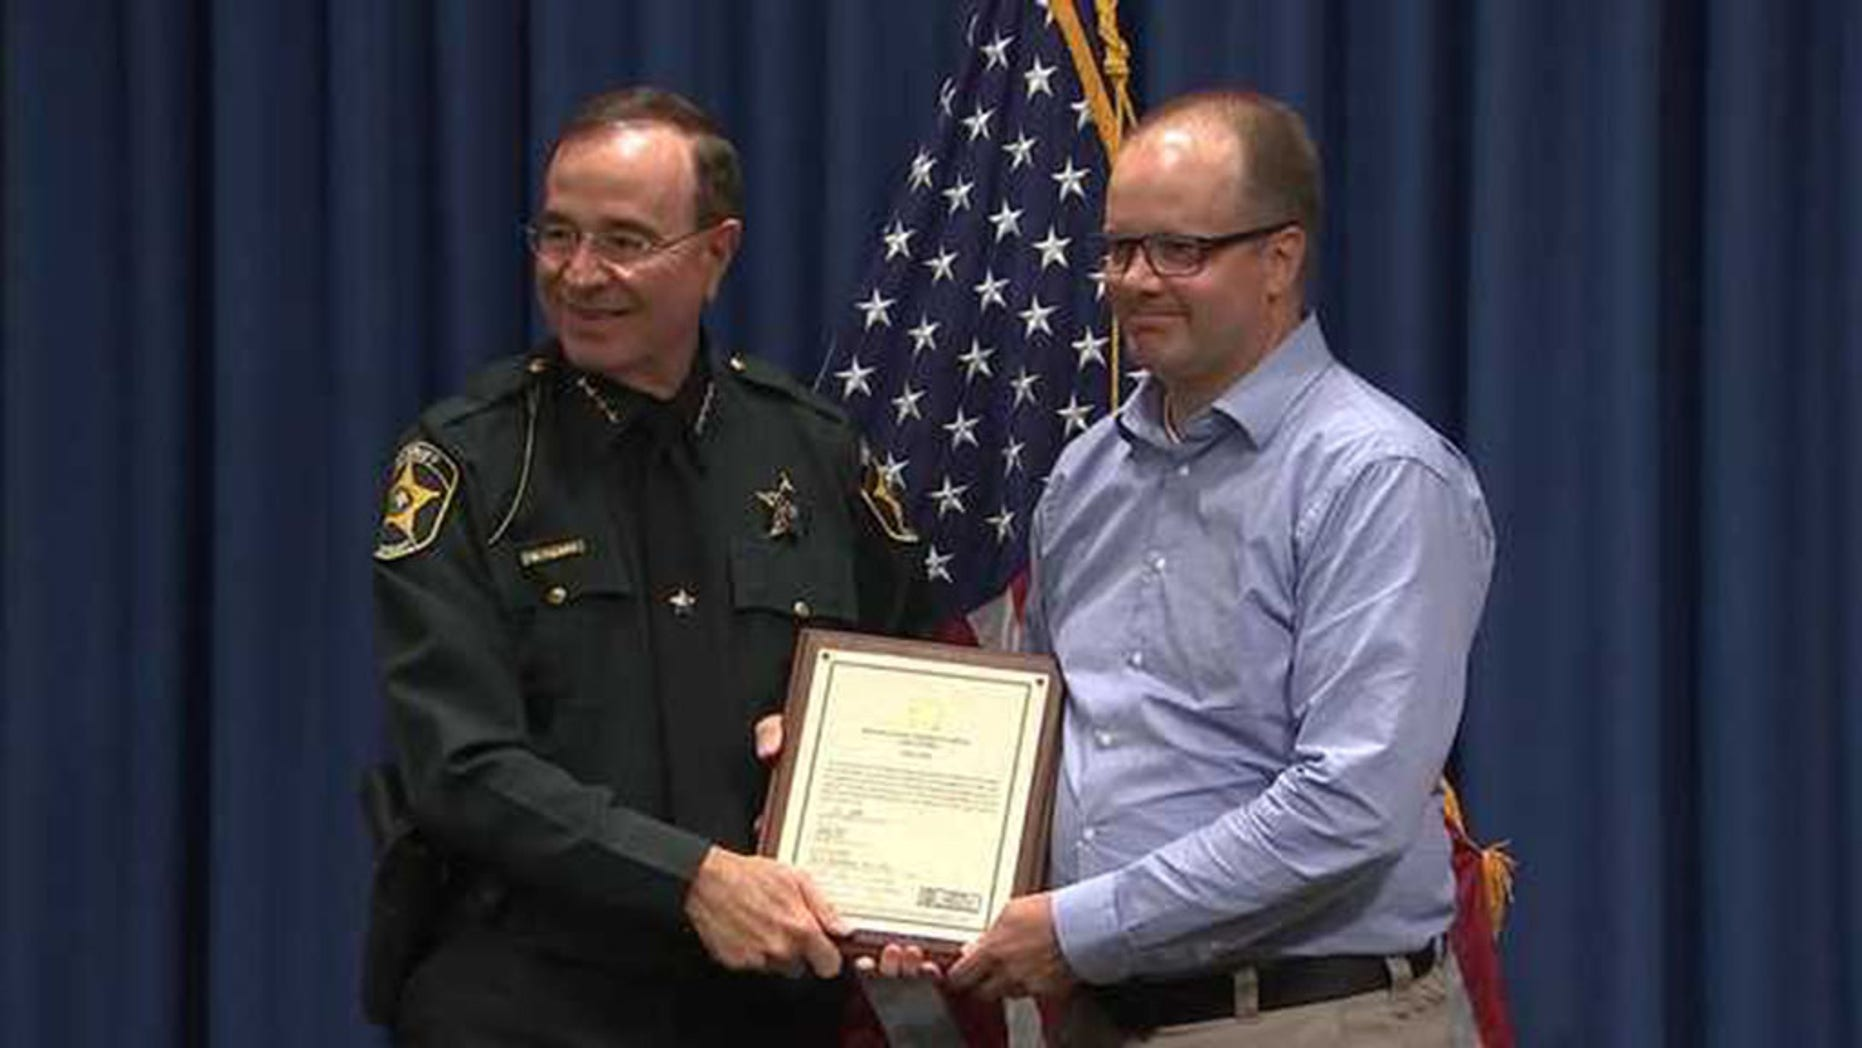 Ryan Petty, right, a father of a Parkland sharpened plant Alaina Petty, became an titular armed propagandize defender Thursday in Polk County.